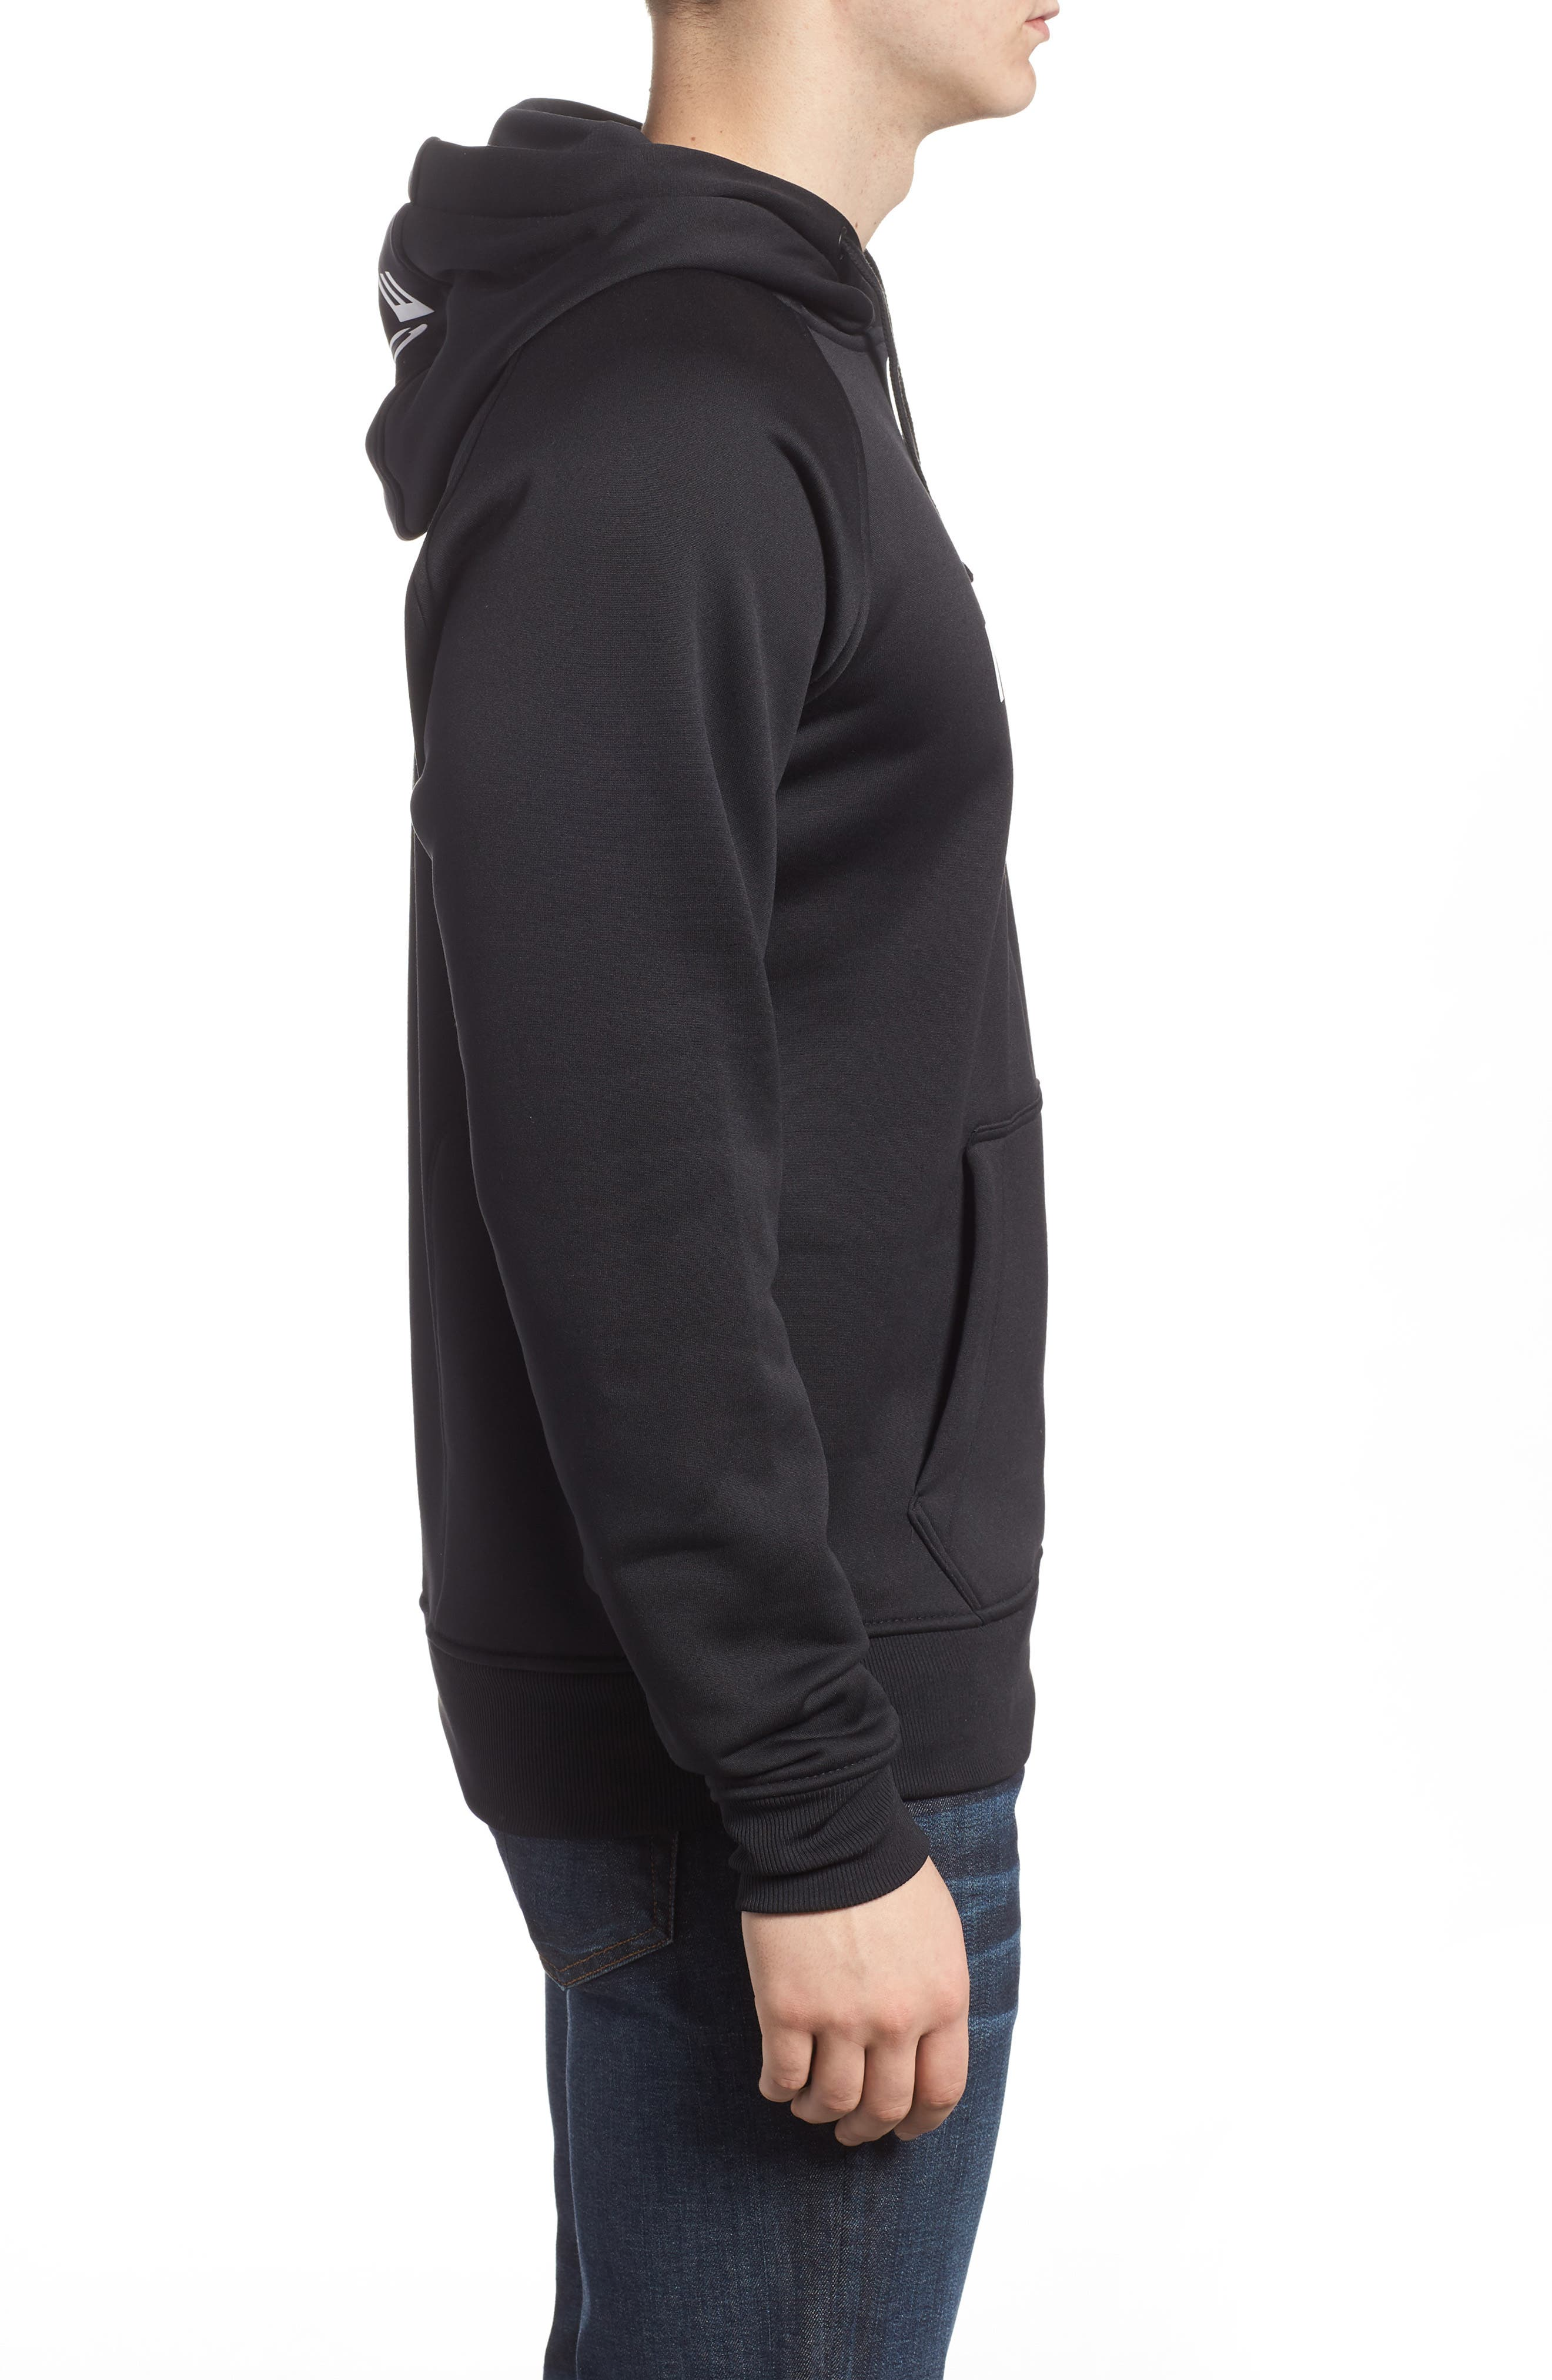 THE NORTH FACE,                             Mount Modern Hoodie,                             Alternate thumbnail 3, color,                             001